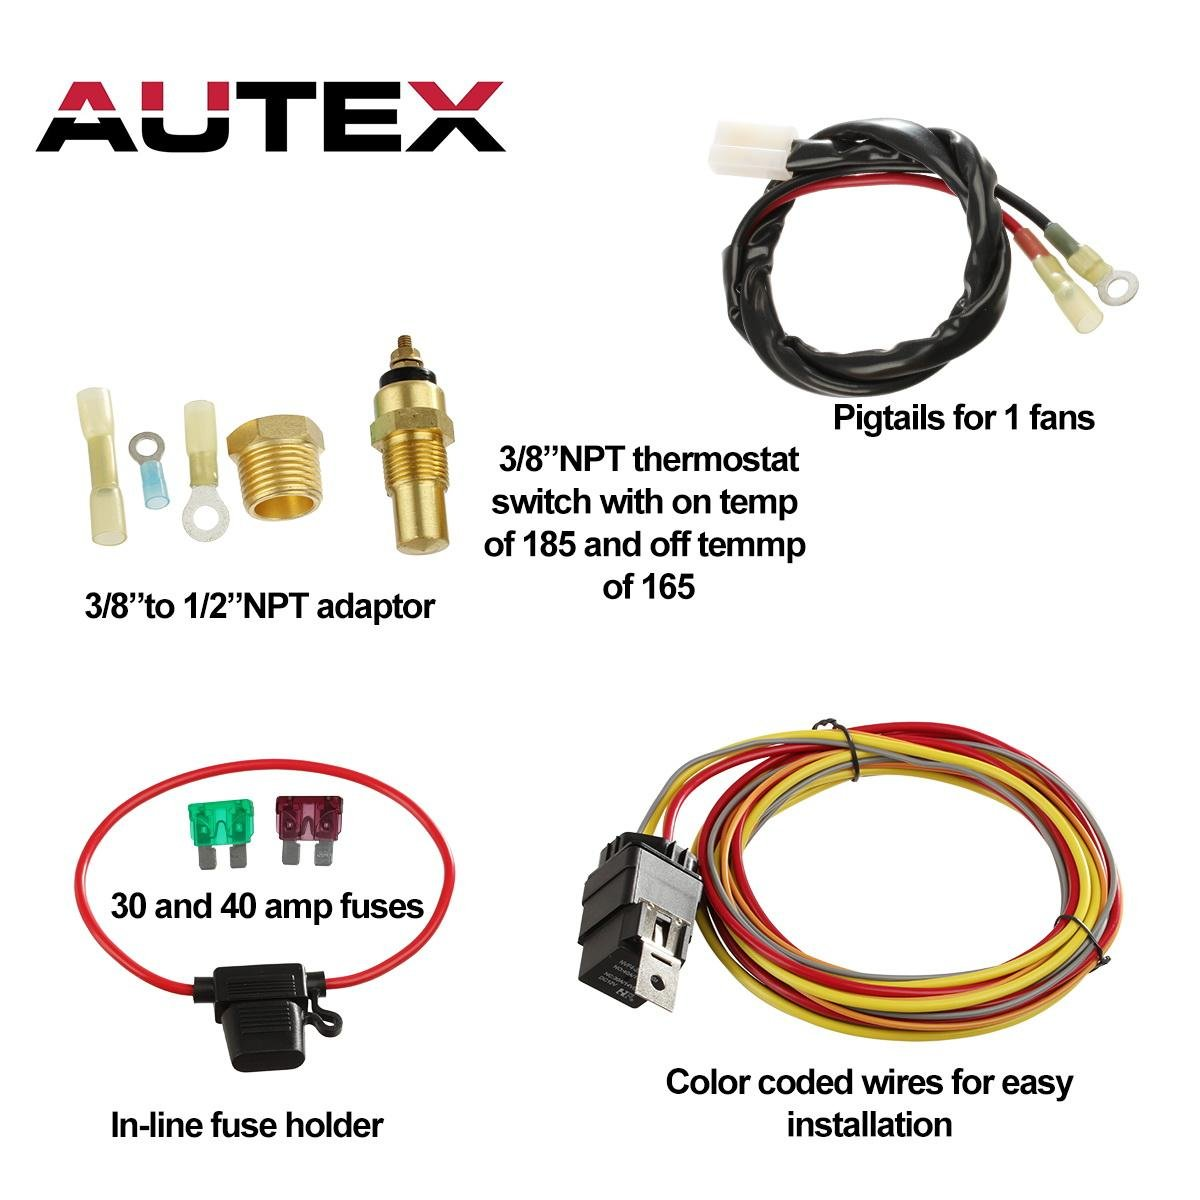 Autex New Dual Electric Cooling Fan 185 Degree On 165 Vw Radiator Switch Wiring Off Engine Thermostat Temperature 40 50 Amp Relay Kit W 1 Wire Harness